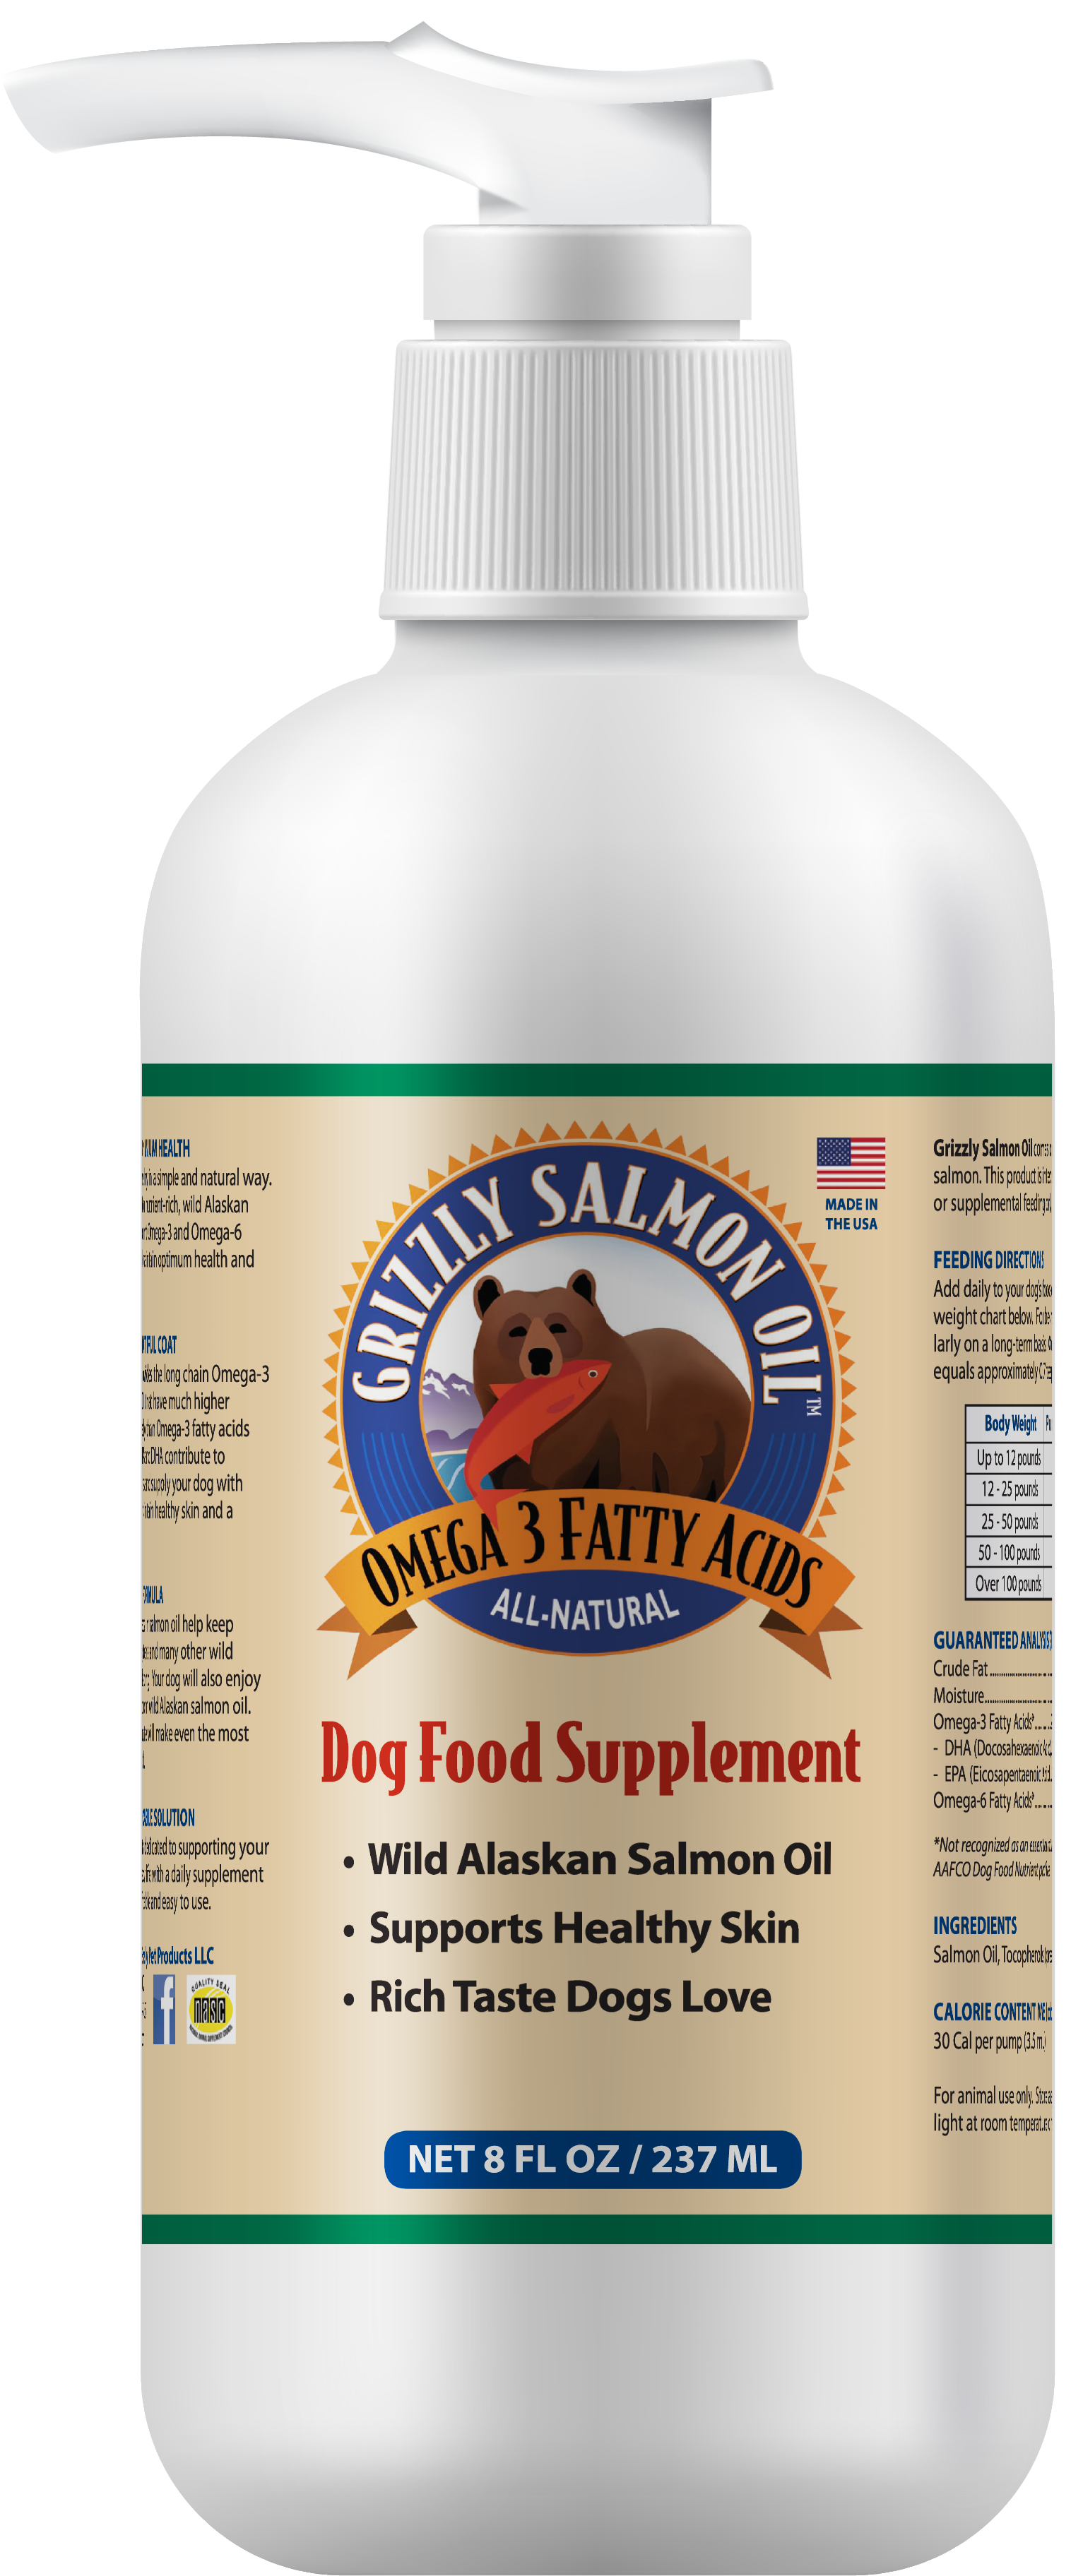 Grizzly Salmon Oil Dog Food Supplement, 8-oz bottle